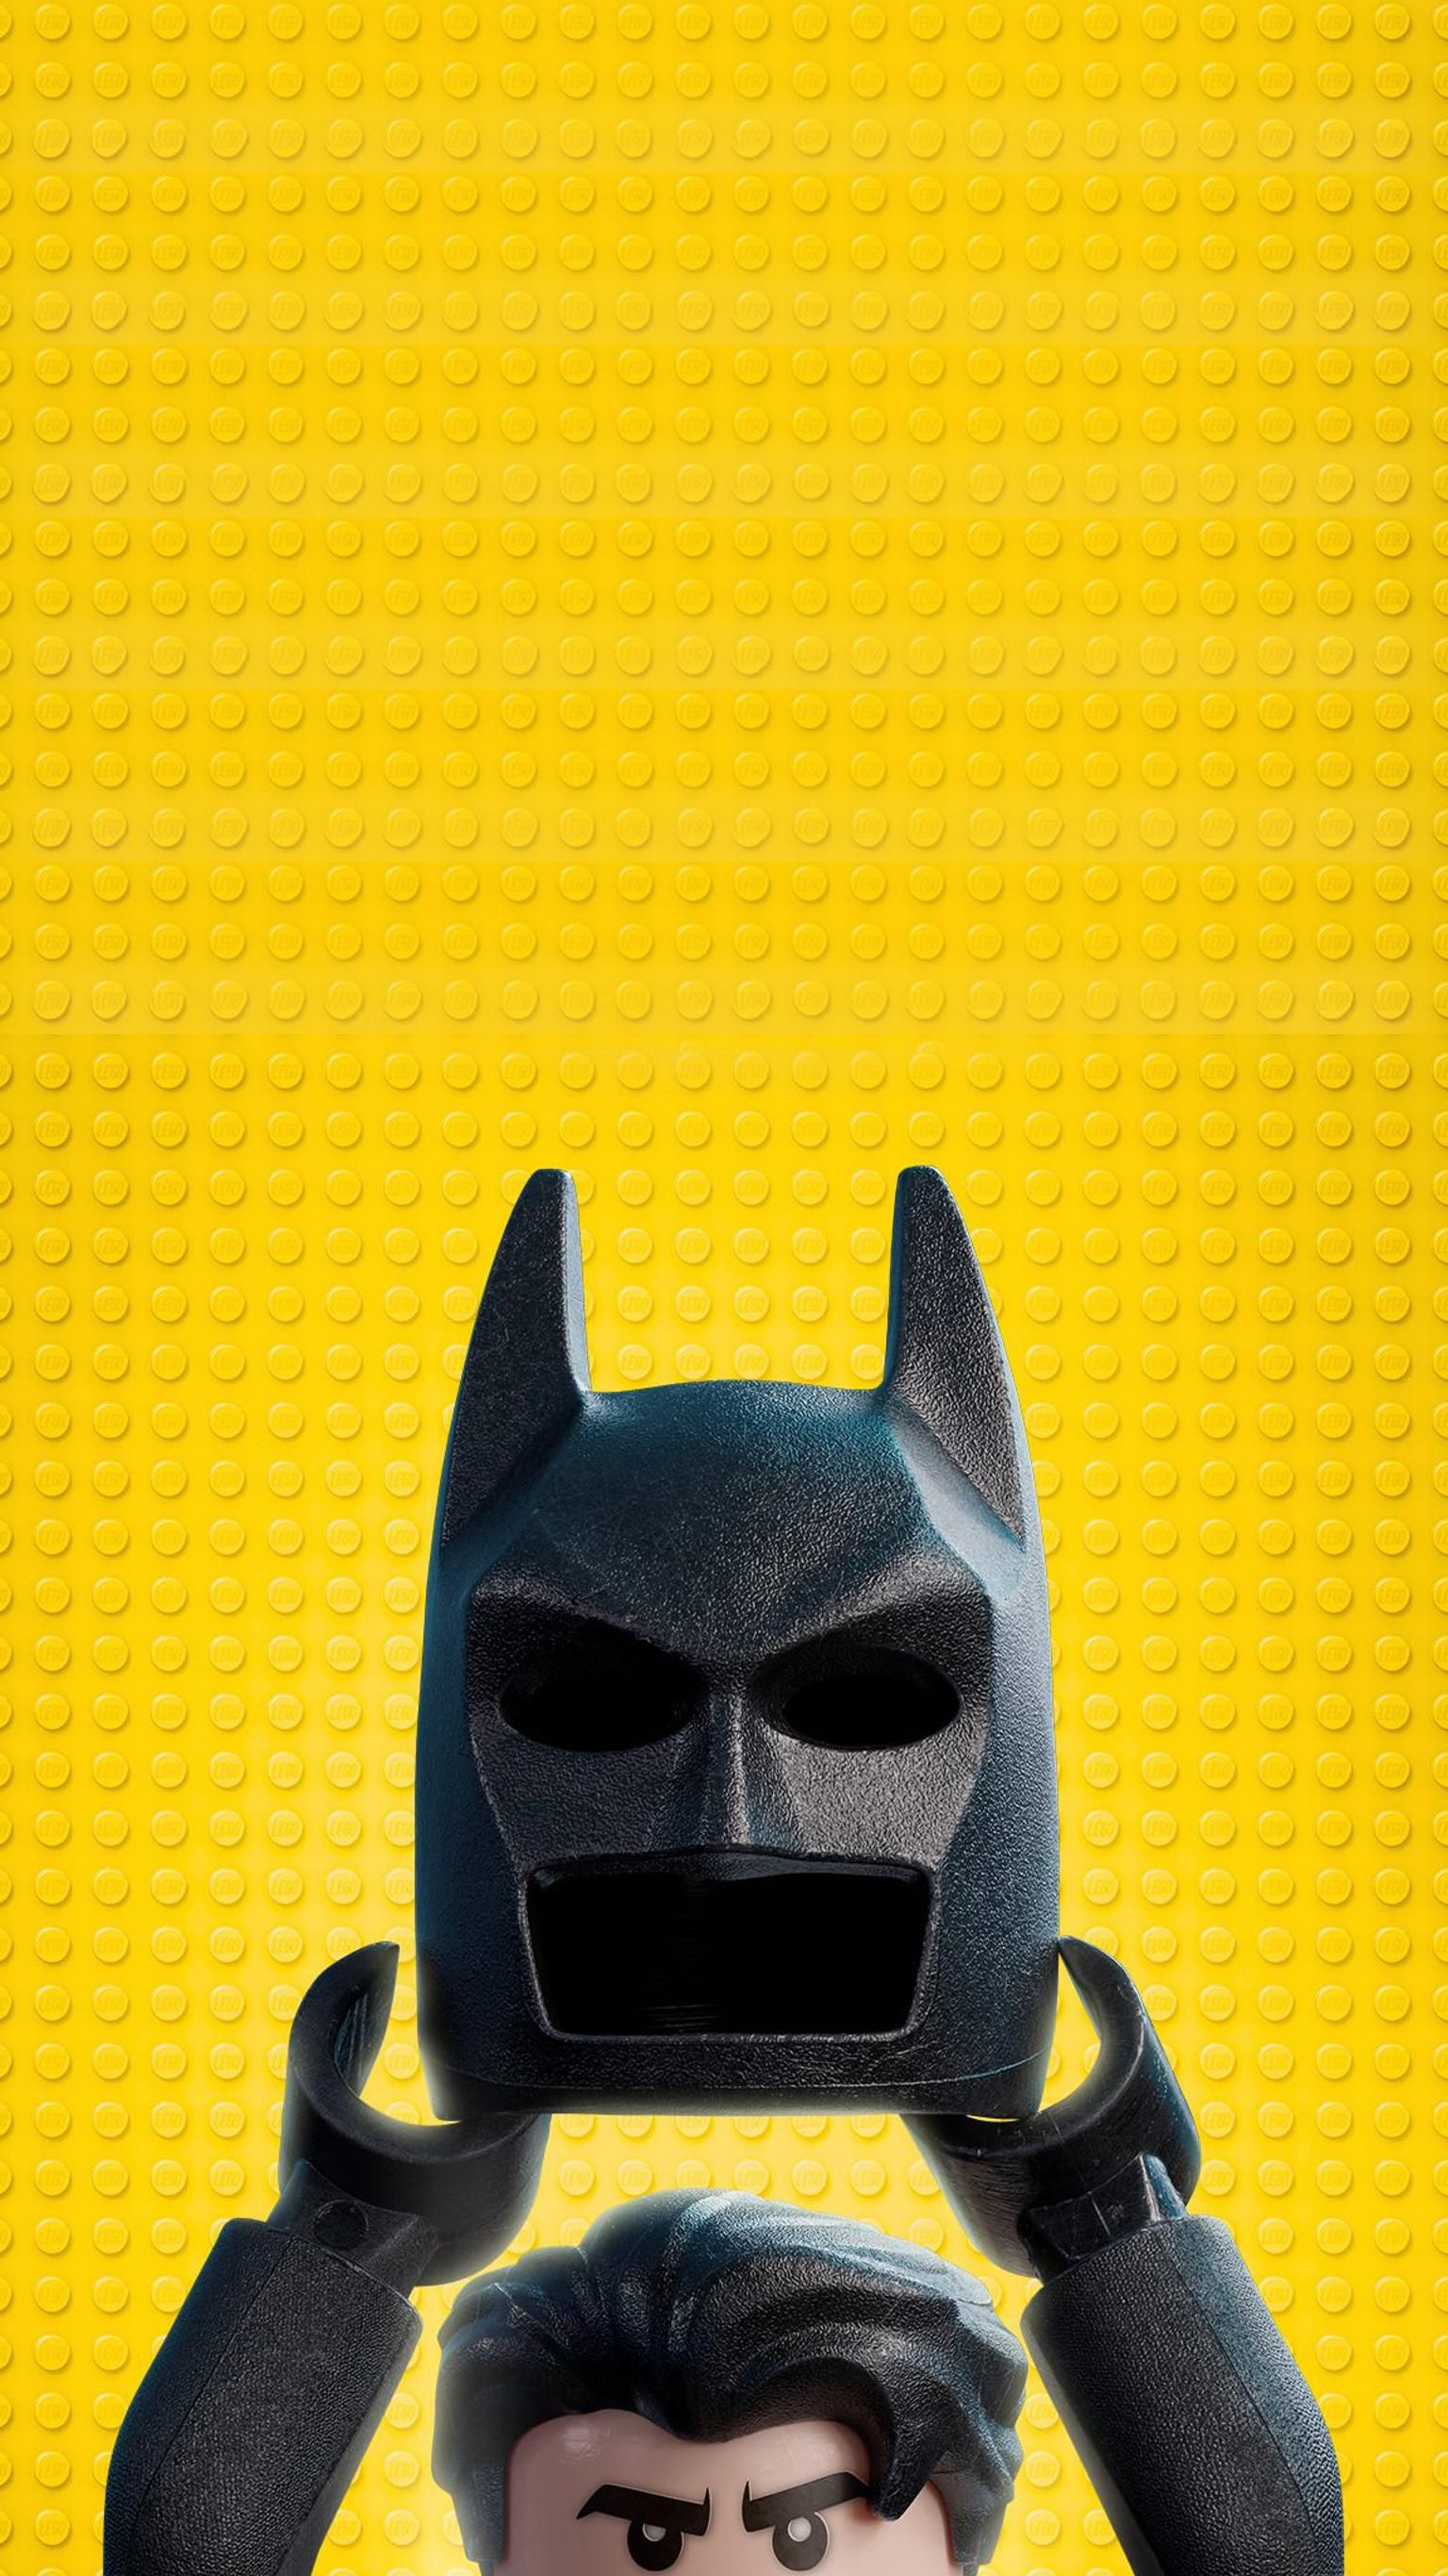 The Lego Batman Movie 2017 Phone Wallpaper Moviemania Lego Batman Wallpaper Batman Wallpaper Lego Batman Movie